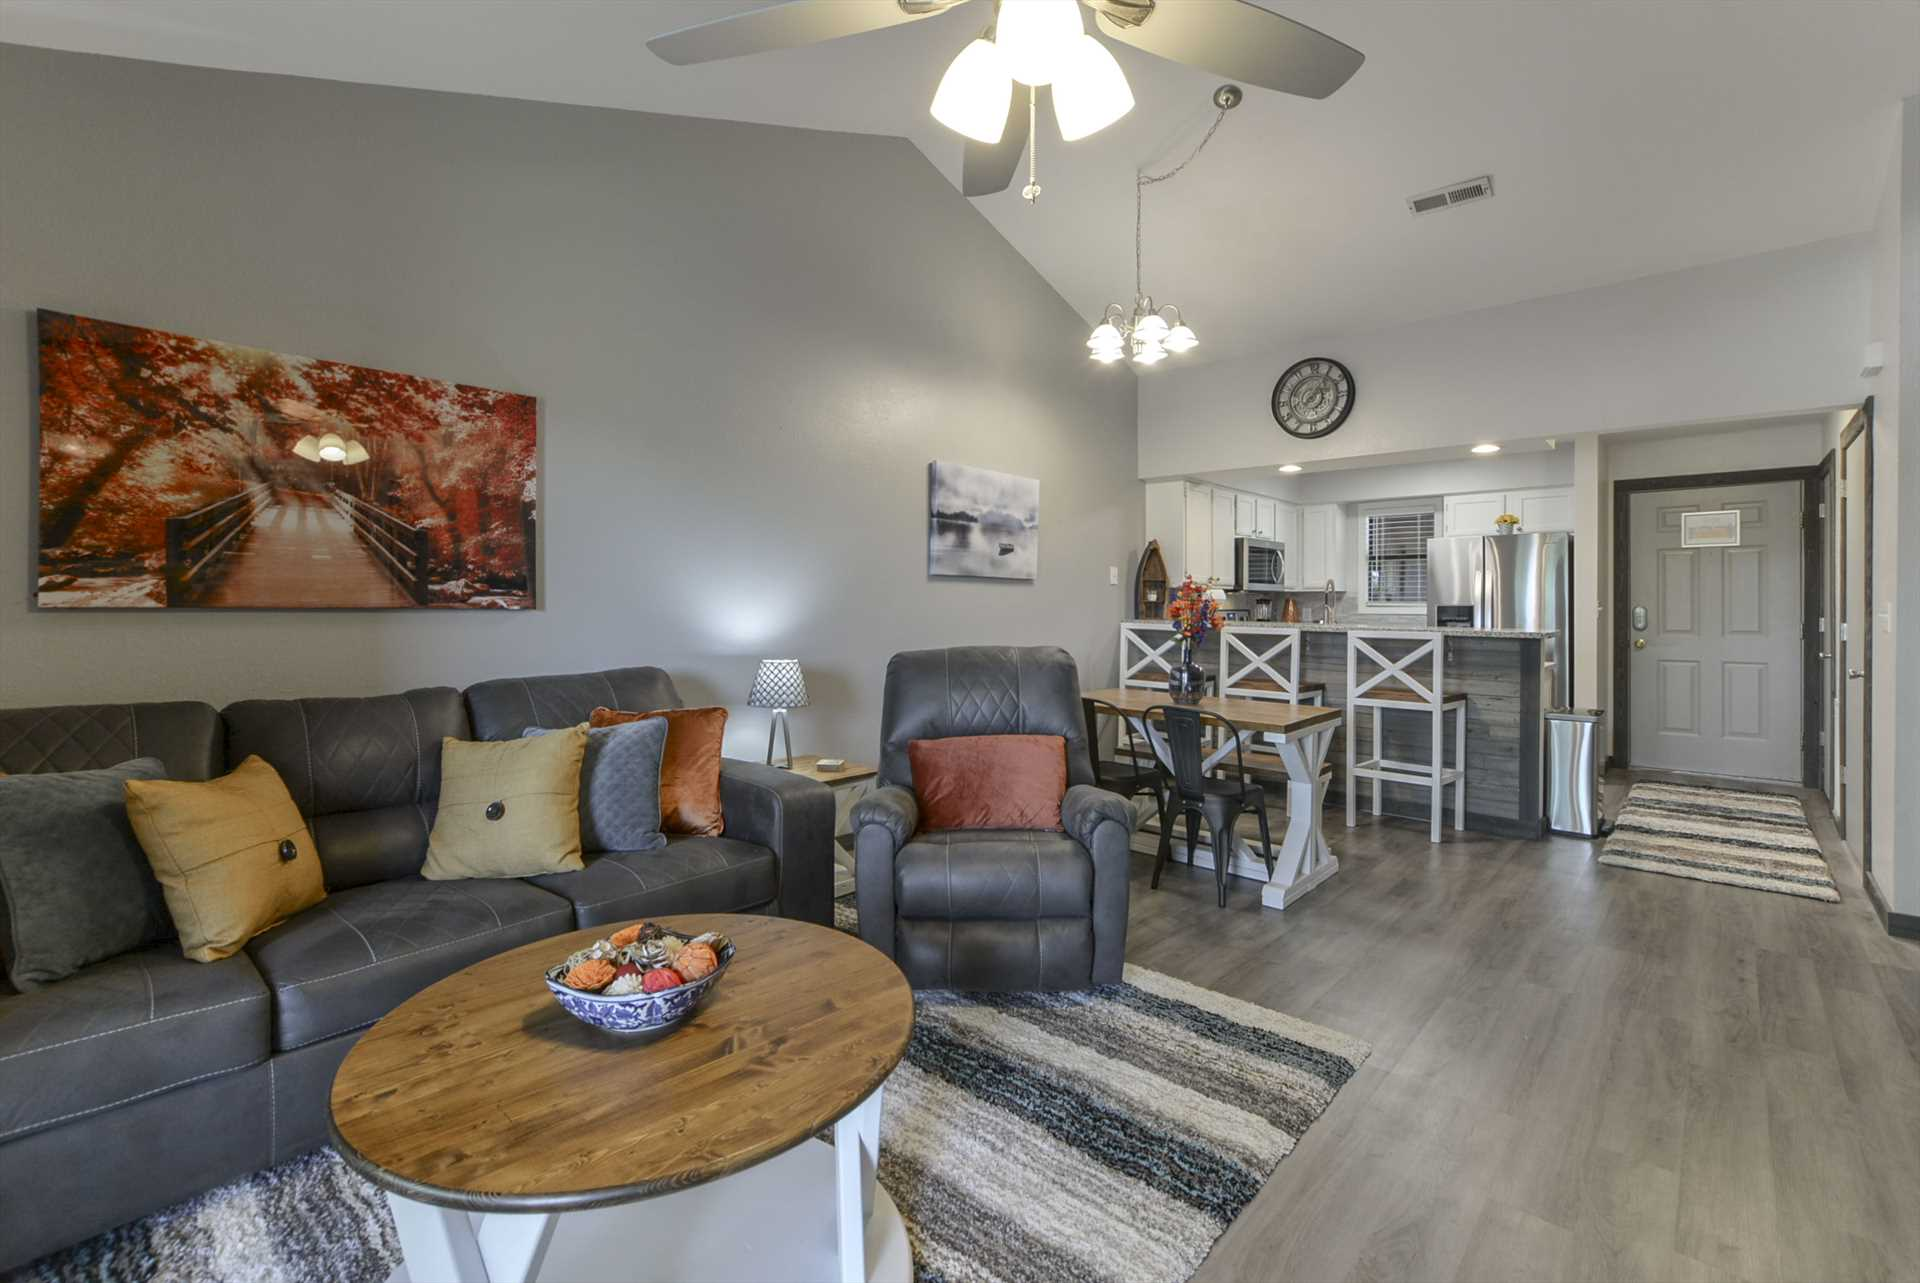 The spacious living area is open to the kitchen, and include